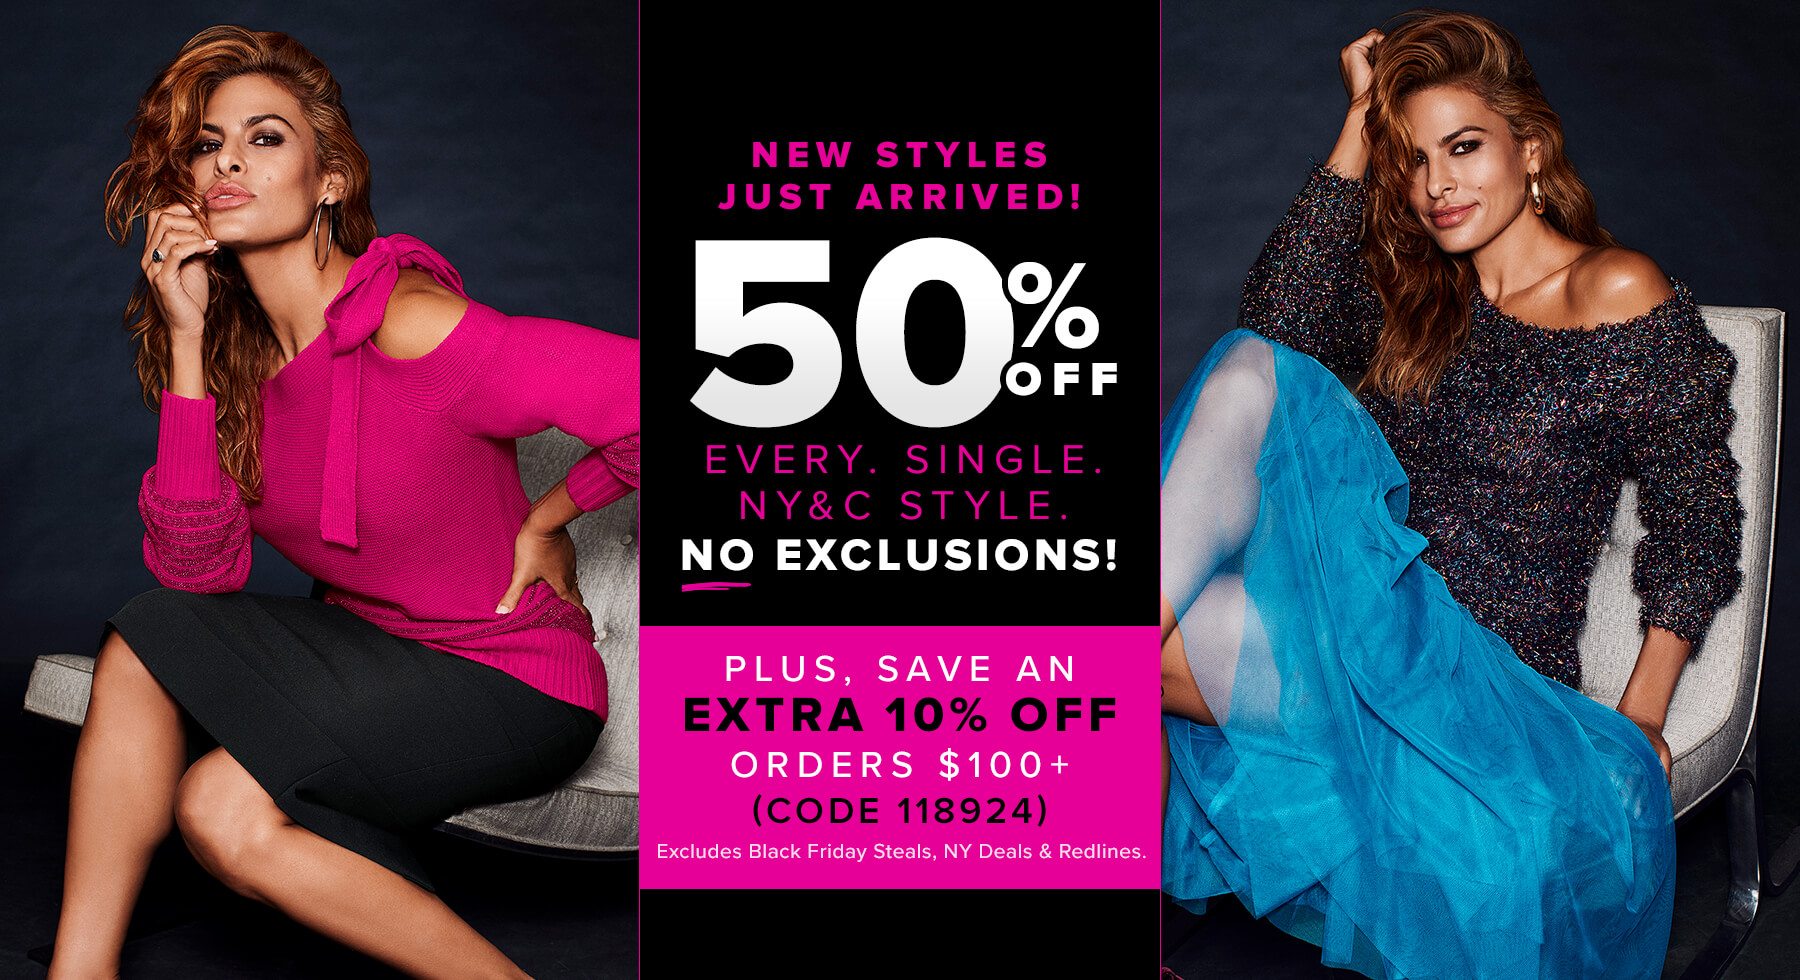 50% Off or More Everything New York & Company No Exclusions (Does Not Include New Sweet Pea or Celebrity Collections) + Save An Extra 10% Off Orders of $100 or More with Code 118924 (Excludes Black Friday Steals, NY Deals & Redlines).